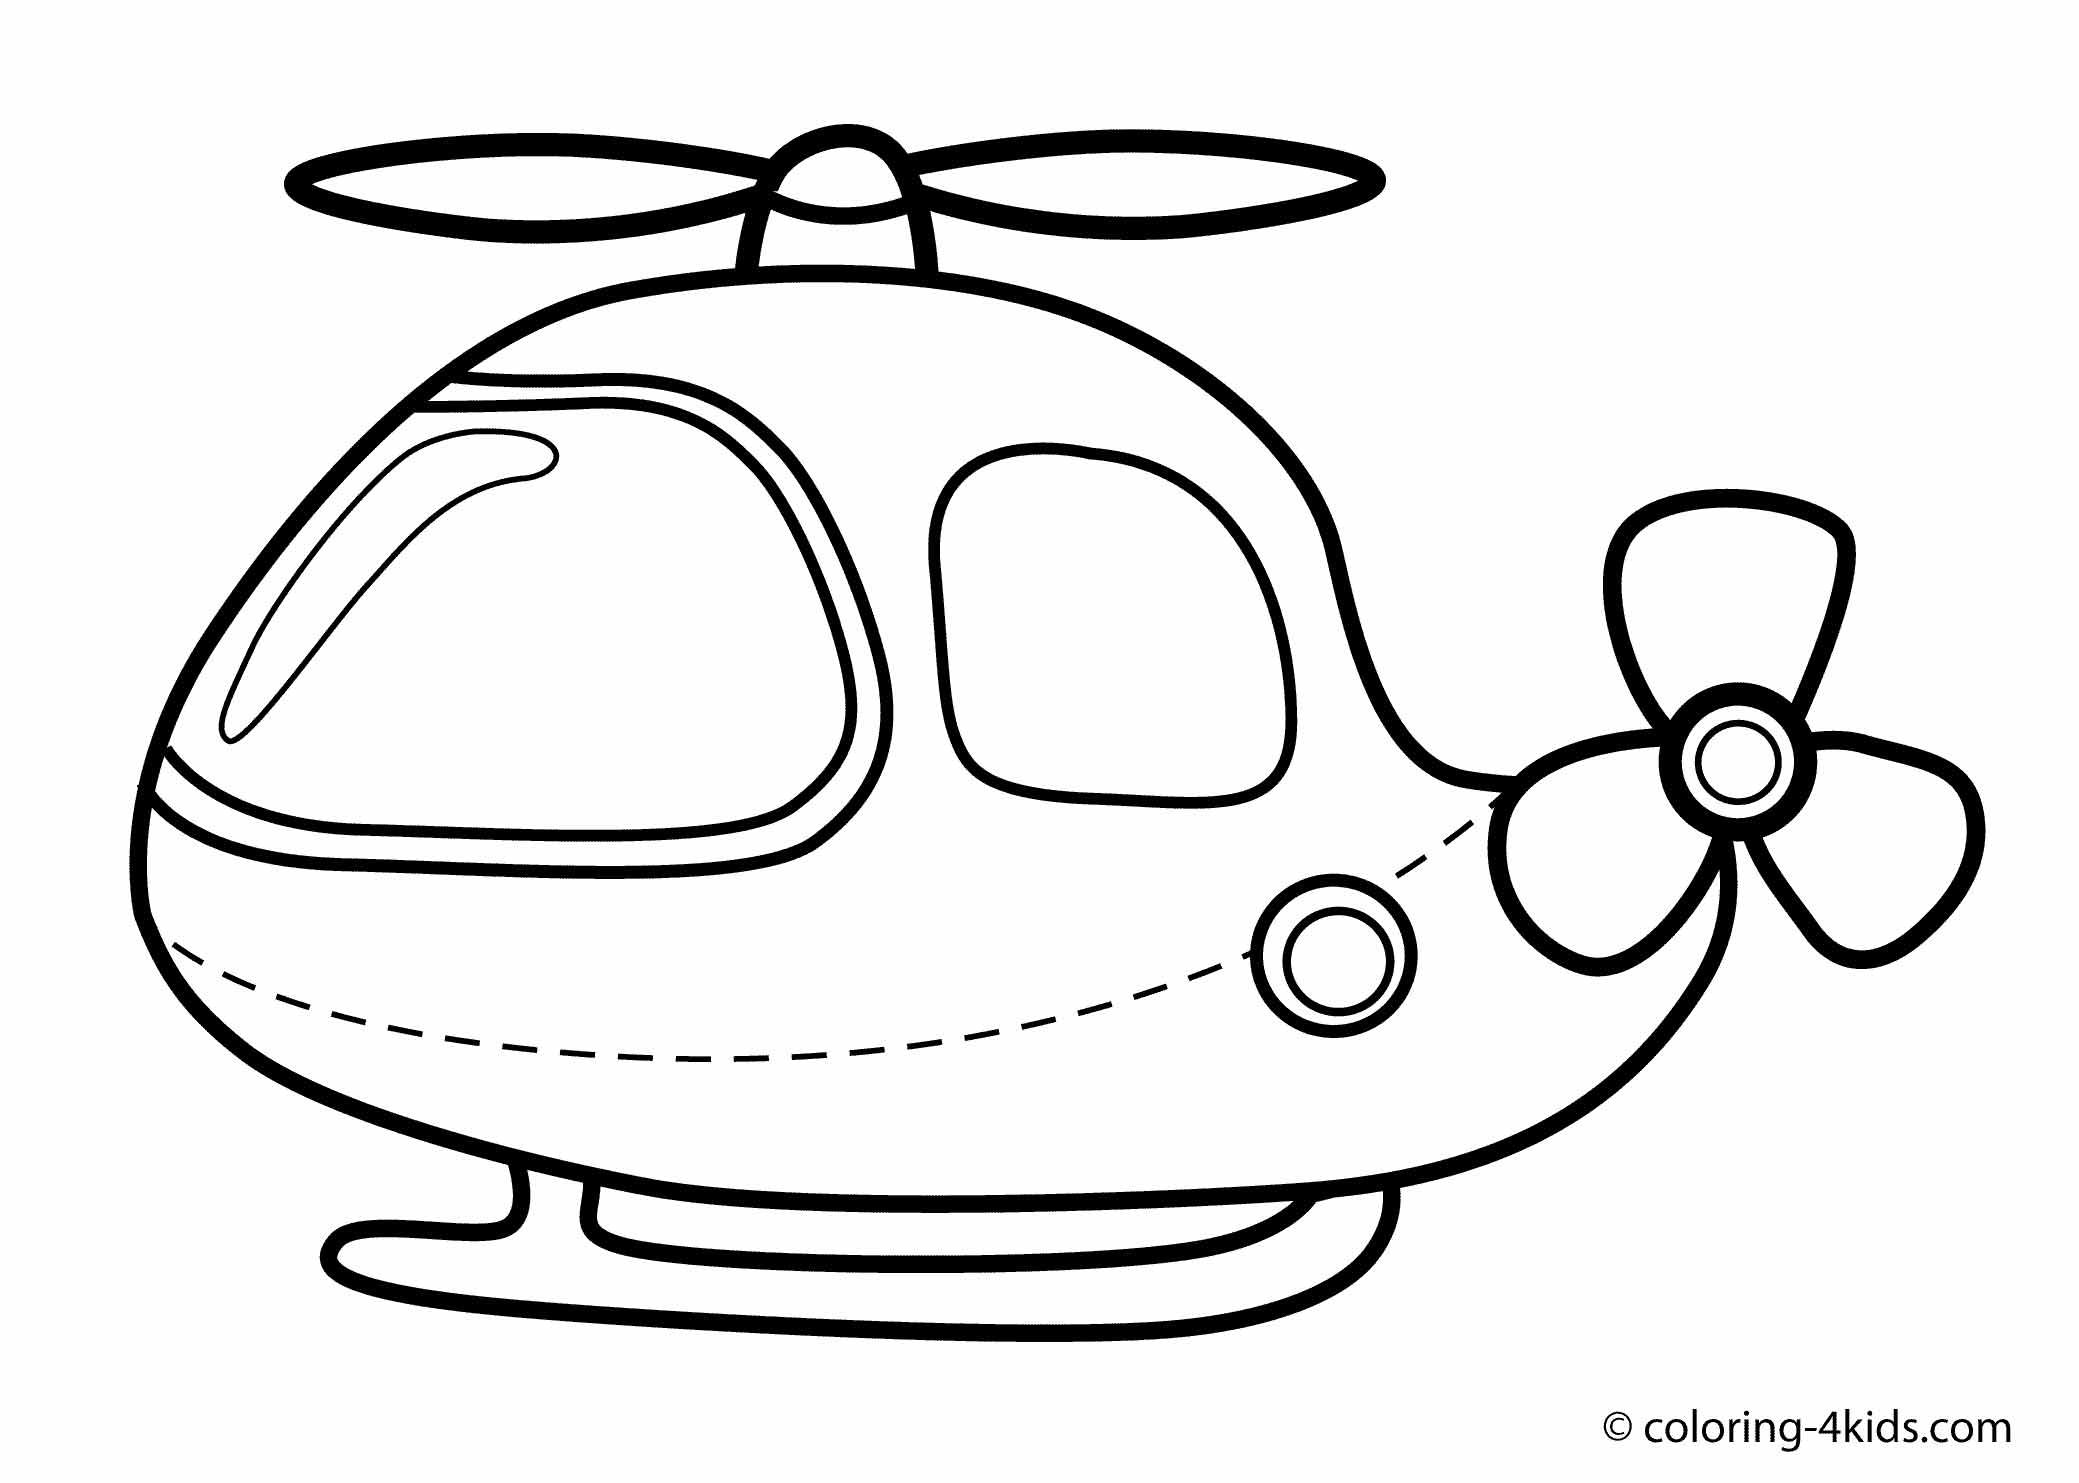 airplane and helicopter coloring pages helicopter coloring page for kids printable free helicopter and coloring airplane pages